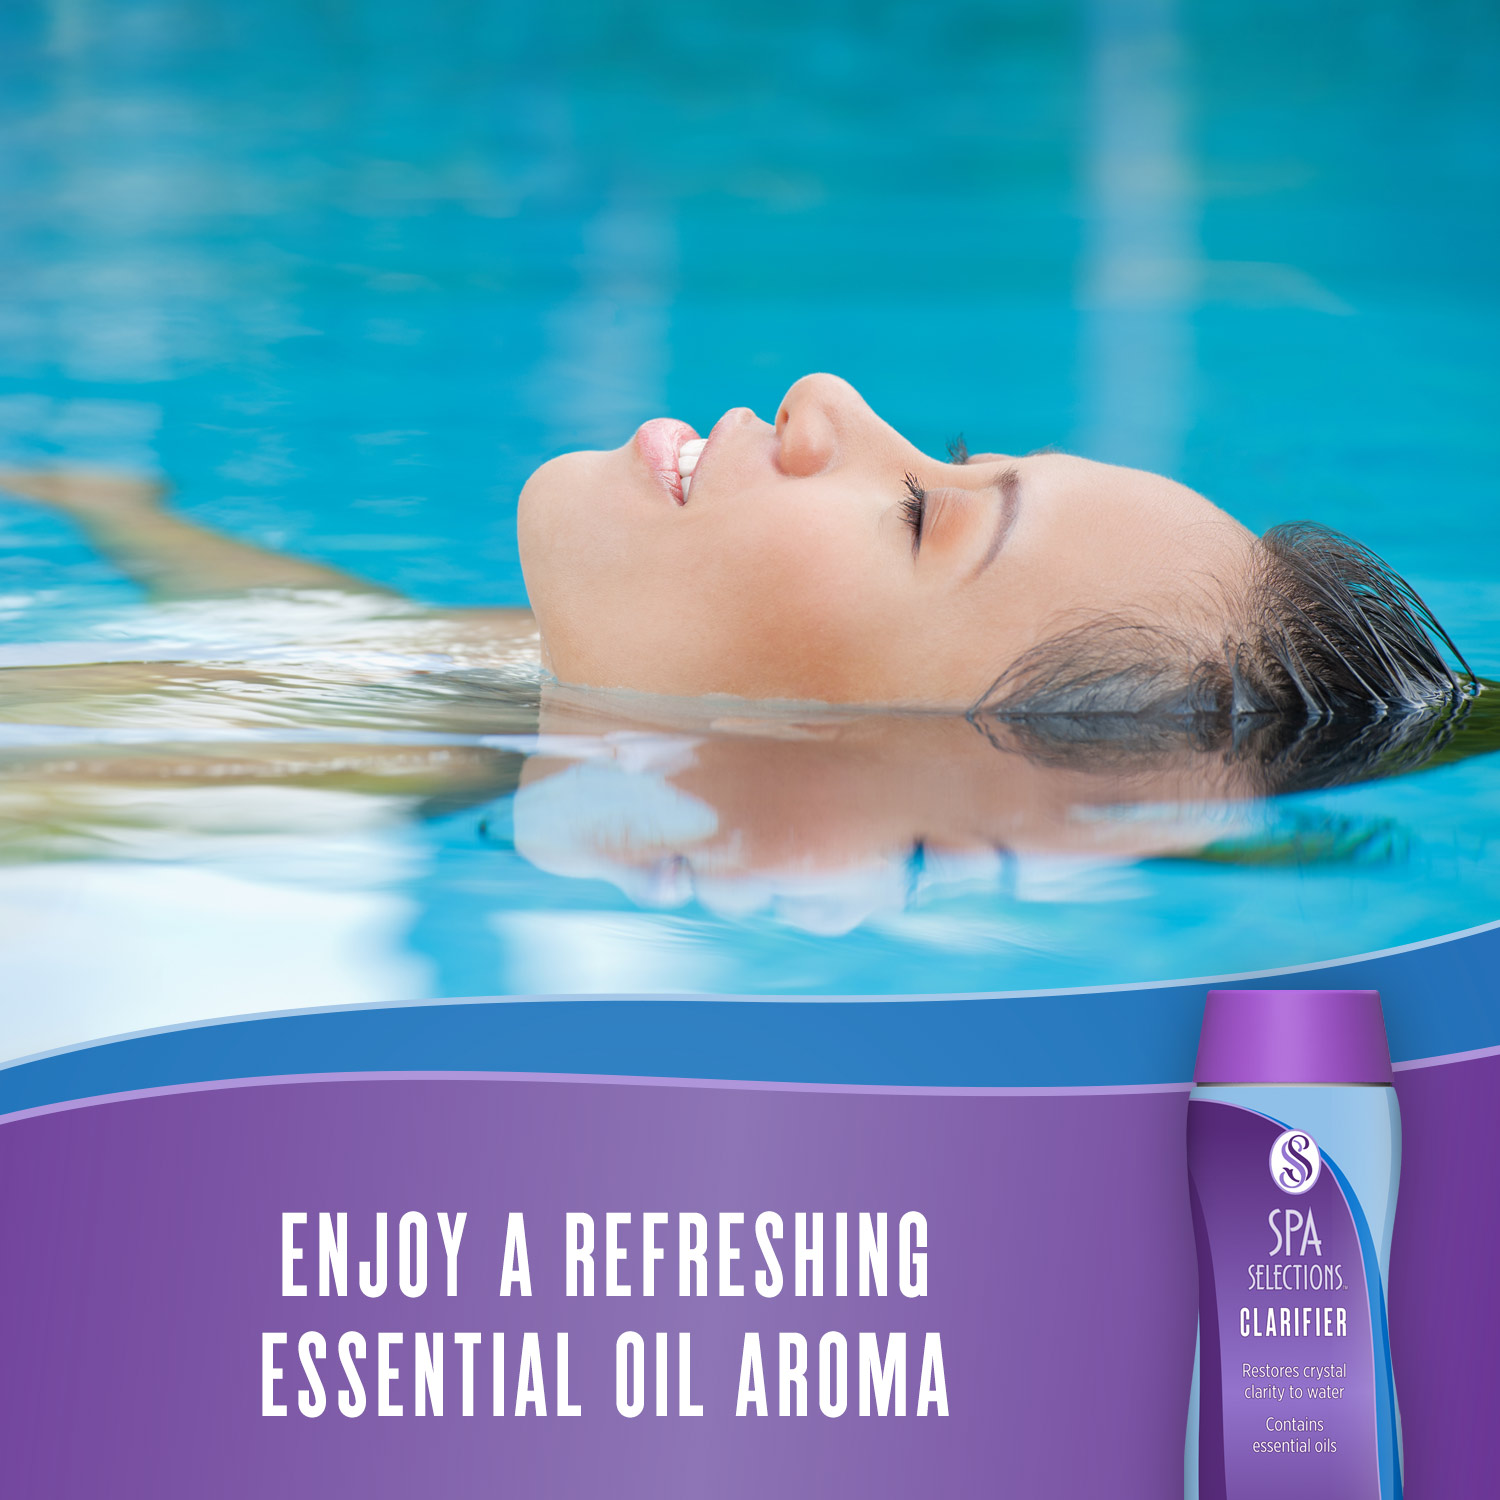 Spa Selections Clarifier allows you to enjoy a refreshing essential oil aroma in your spa or hot tub. Photo of woman floating on back in an outdoor pool.